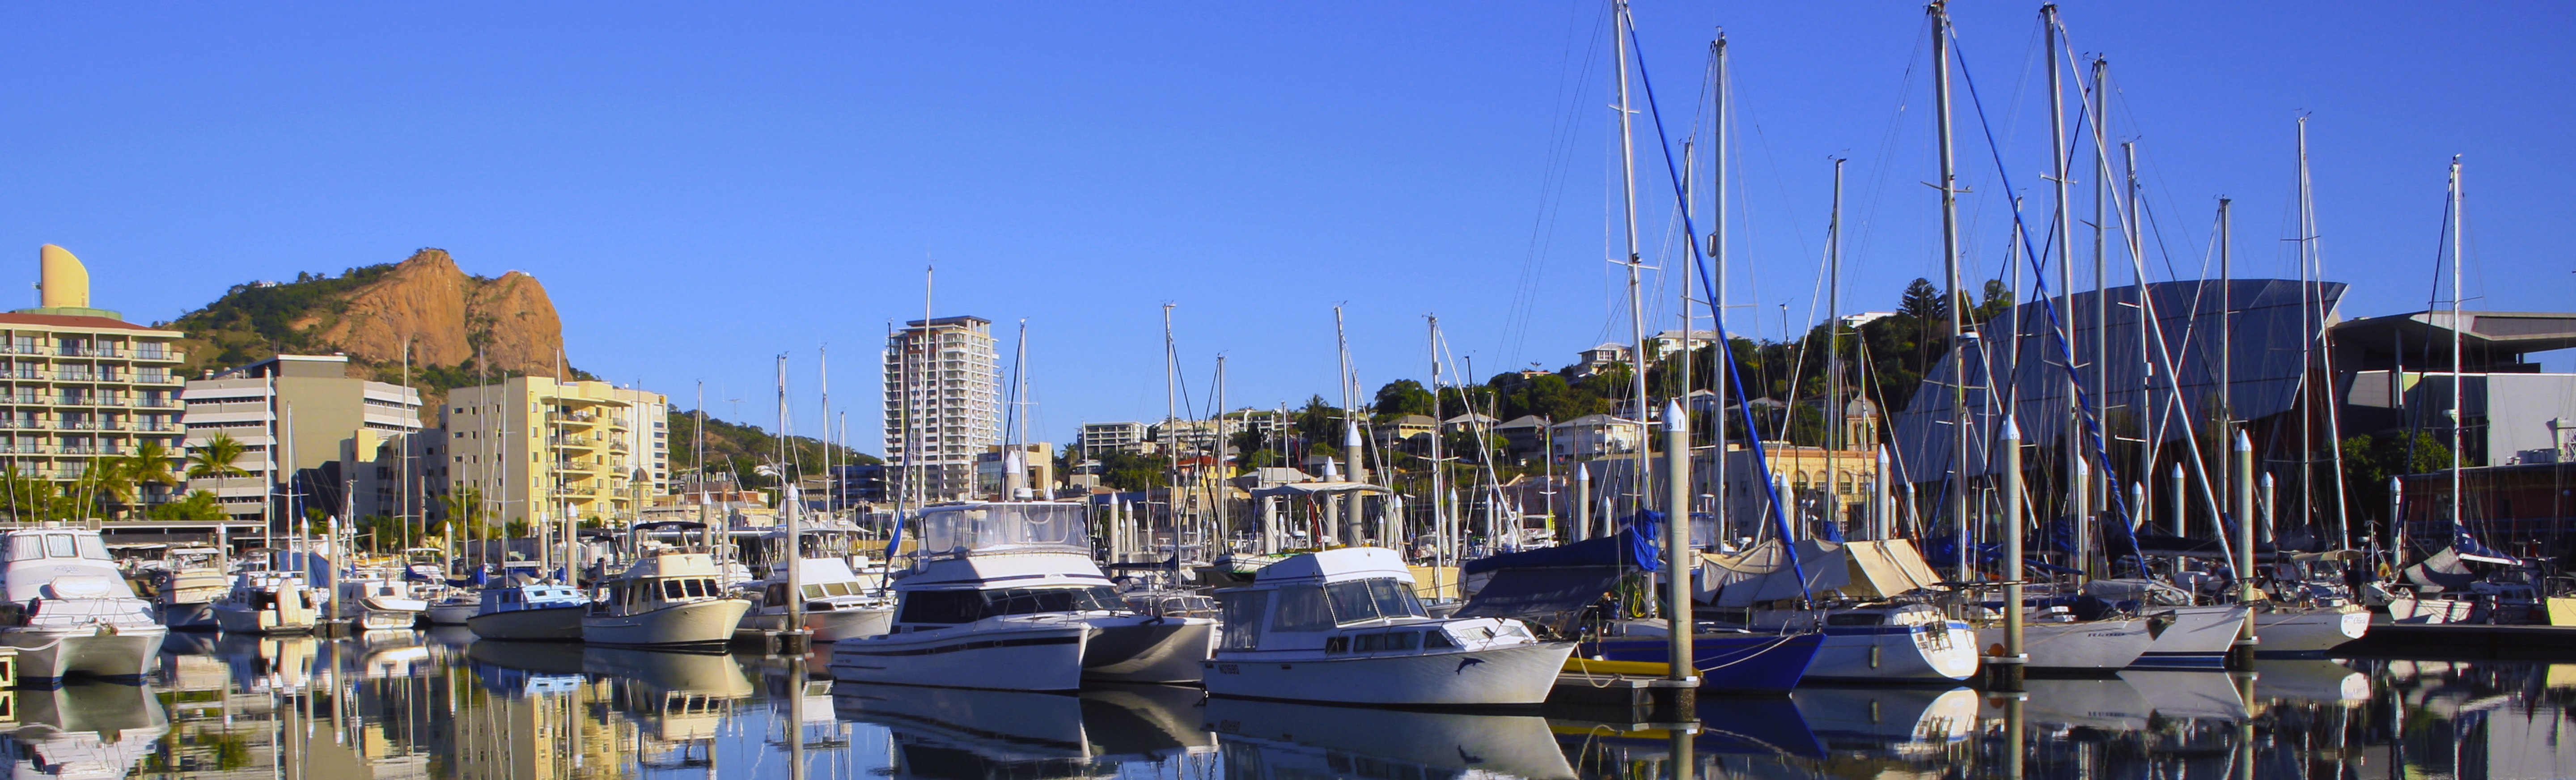 Townsville-Marina_Cropped_1900x5751